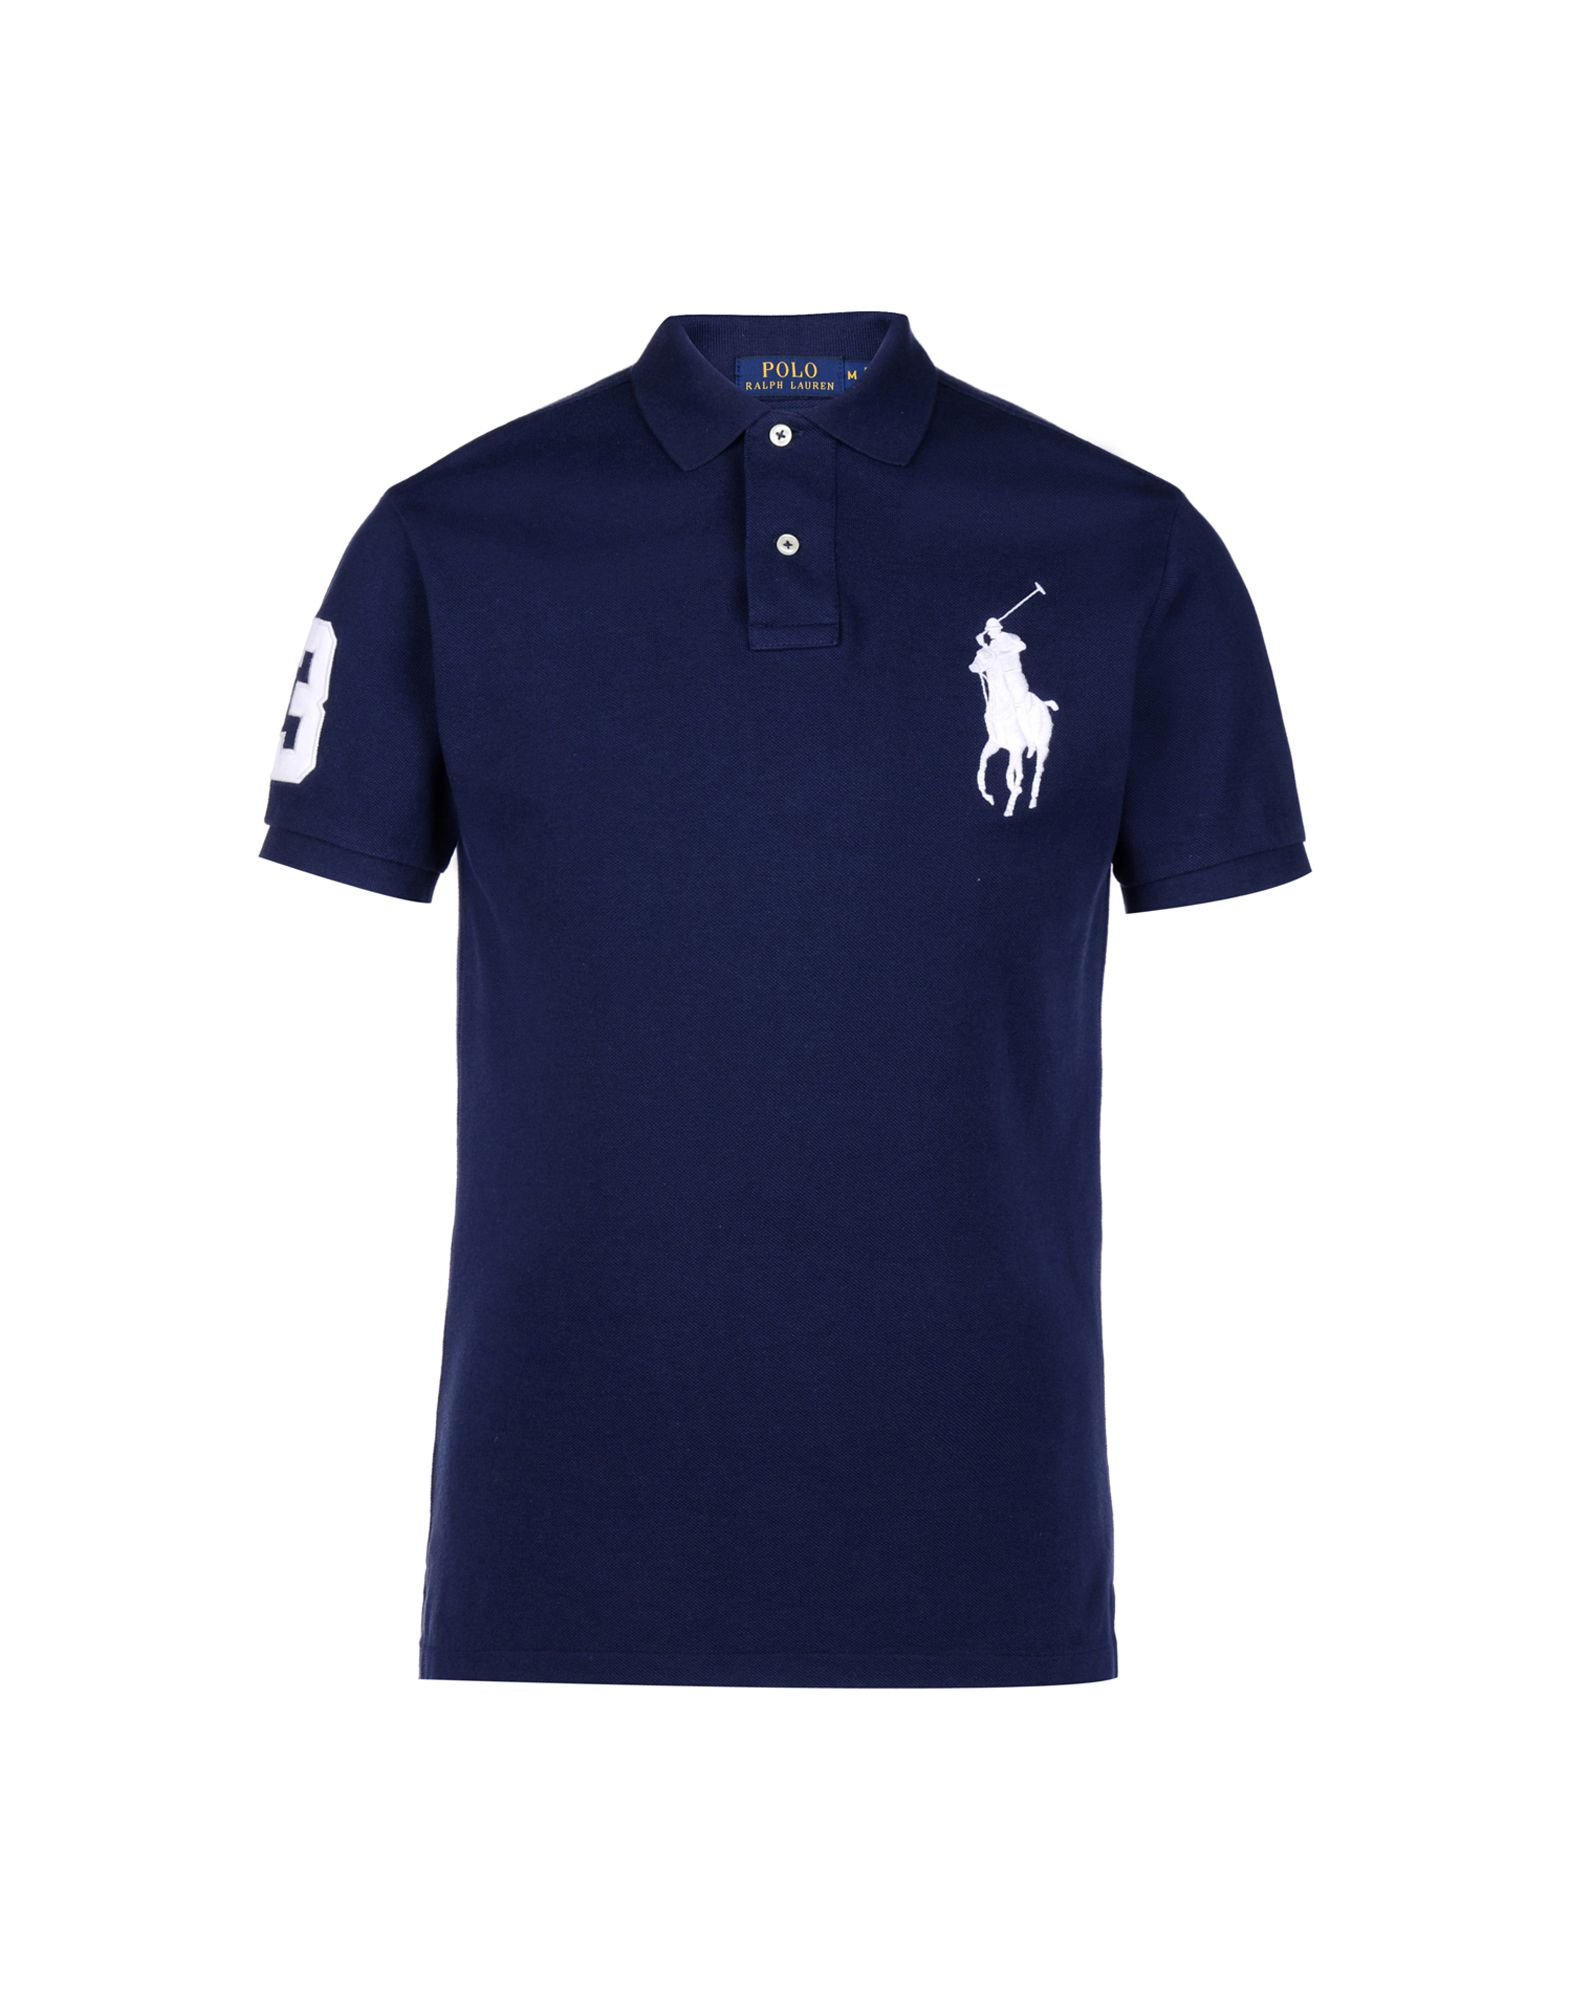 e658865888 Polo Ralph Lauren Custom Fit Big Pp Polo - Polo Shirt - Men Polo Ralph  Lauren Polo Shirts online on YOOX United Kingdom - 37900756SC